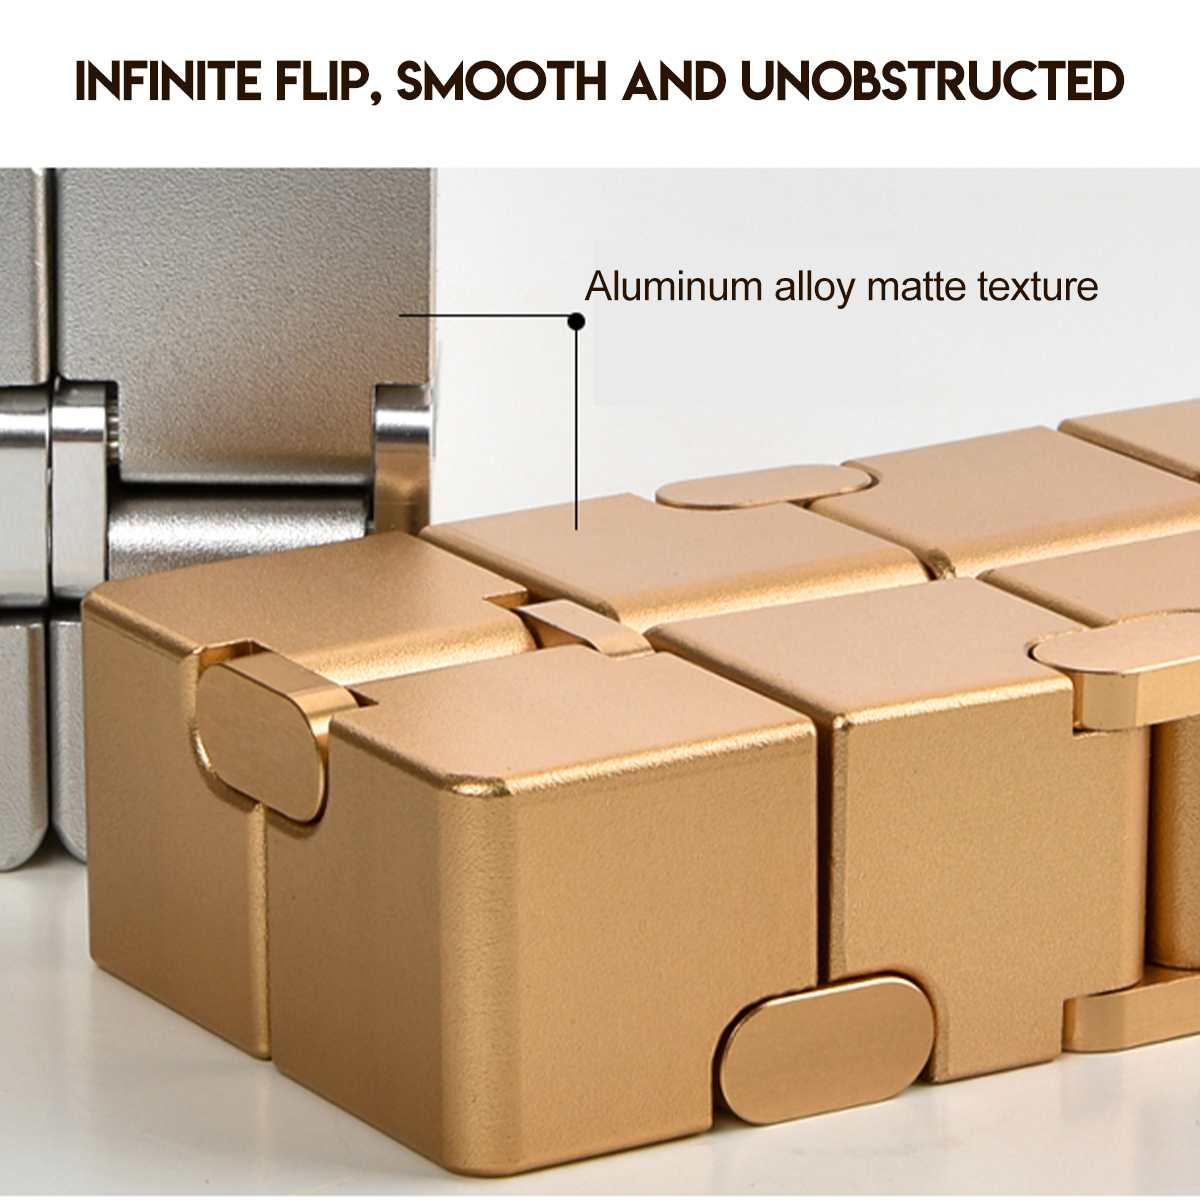 Relax Toy Infinit Cube Magic-Cube Stress Adults Relief-Blocks Finger-Anxiety Mini img3